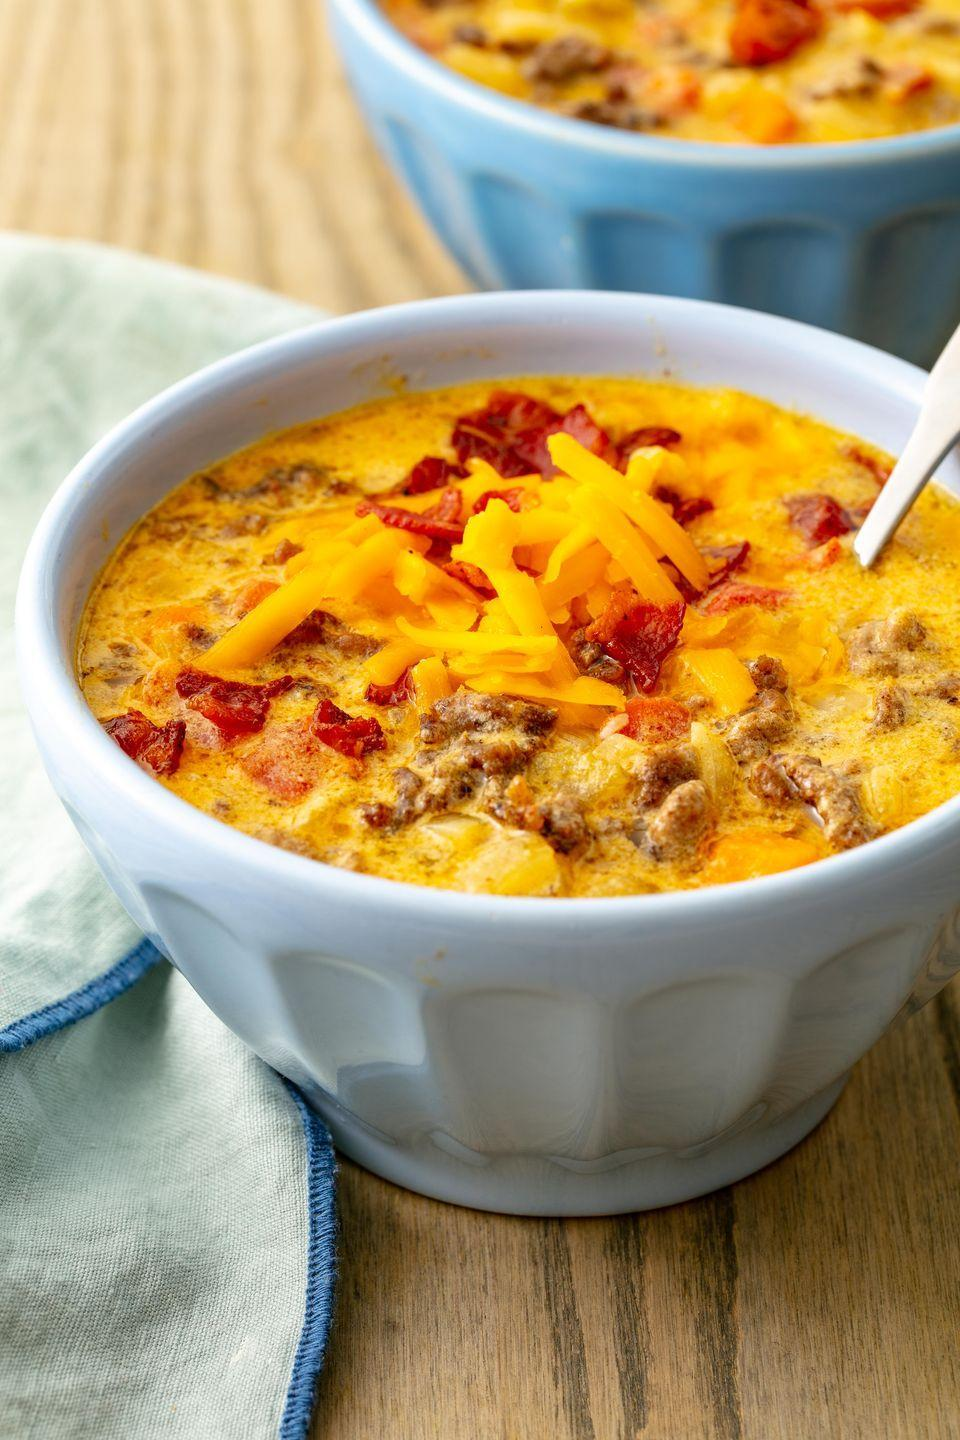 "<p>Burger in a bowl. </p><p>Get the recipe from <a href=""https://www.delish.com/cooking/recipe-ideas/a21972133/easy-cheeseburger-soup-recipe/"" rel=""nofollow noopener"" target=""_blank"" data-ylk=""slk:Delish"" class=""link rapid-noclick-resp"">Delish</a>. </p>"